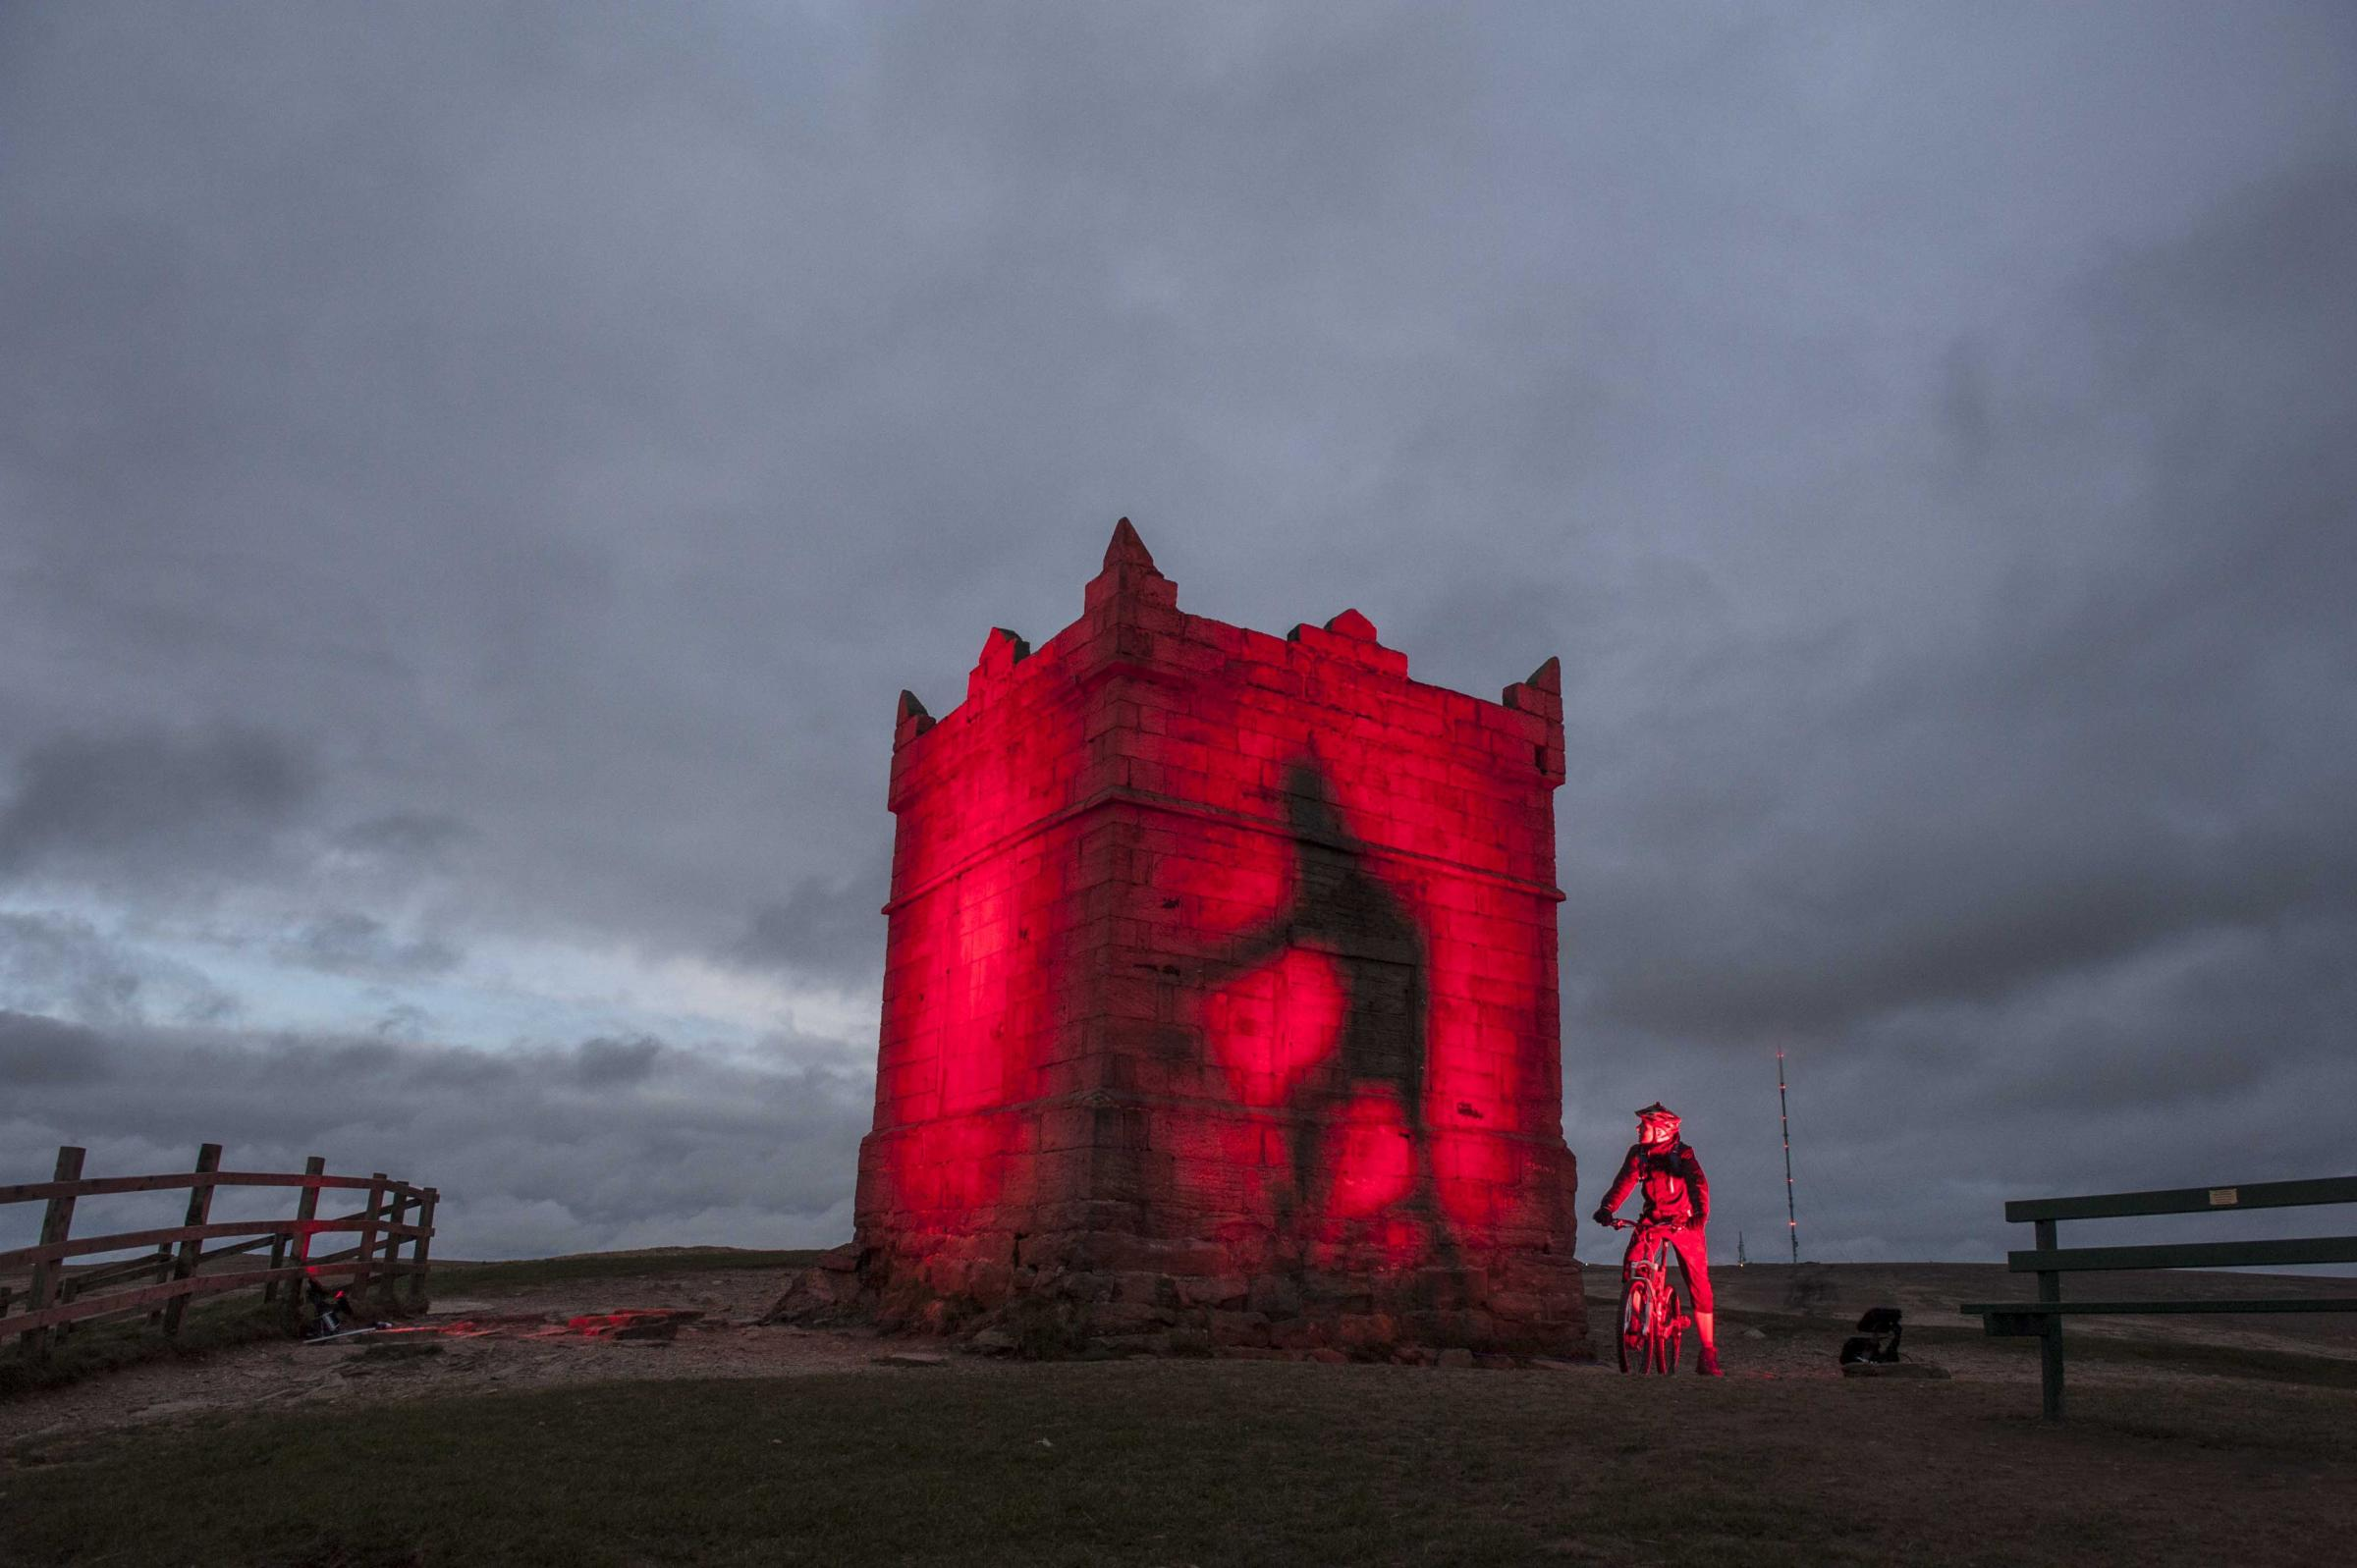 Landmark to turn red in campaign to market Chorley